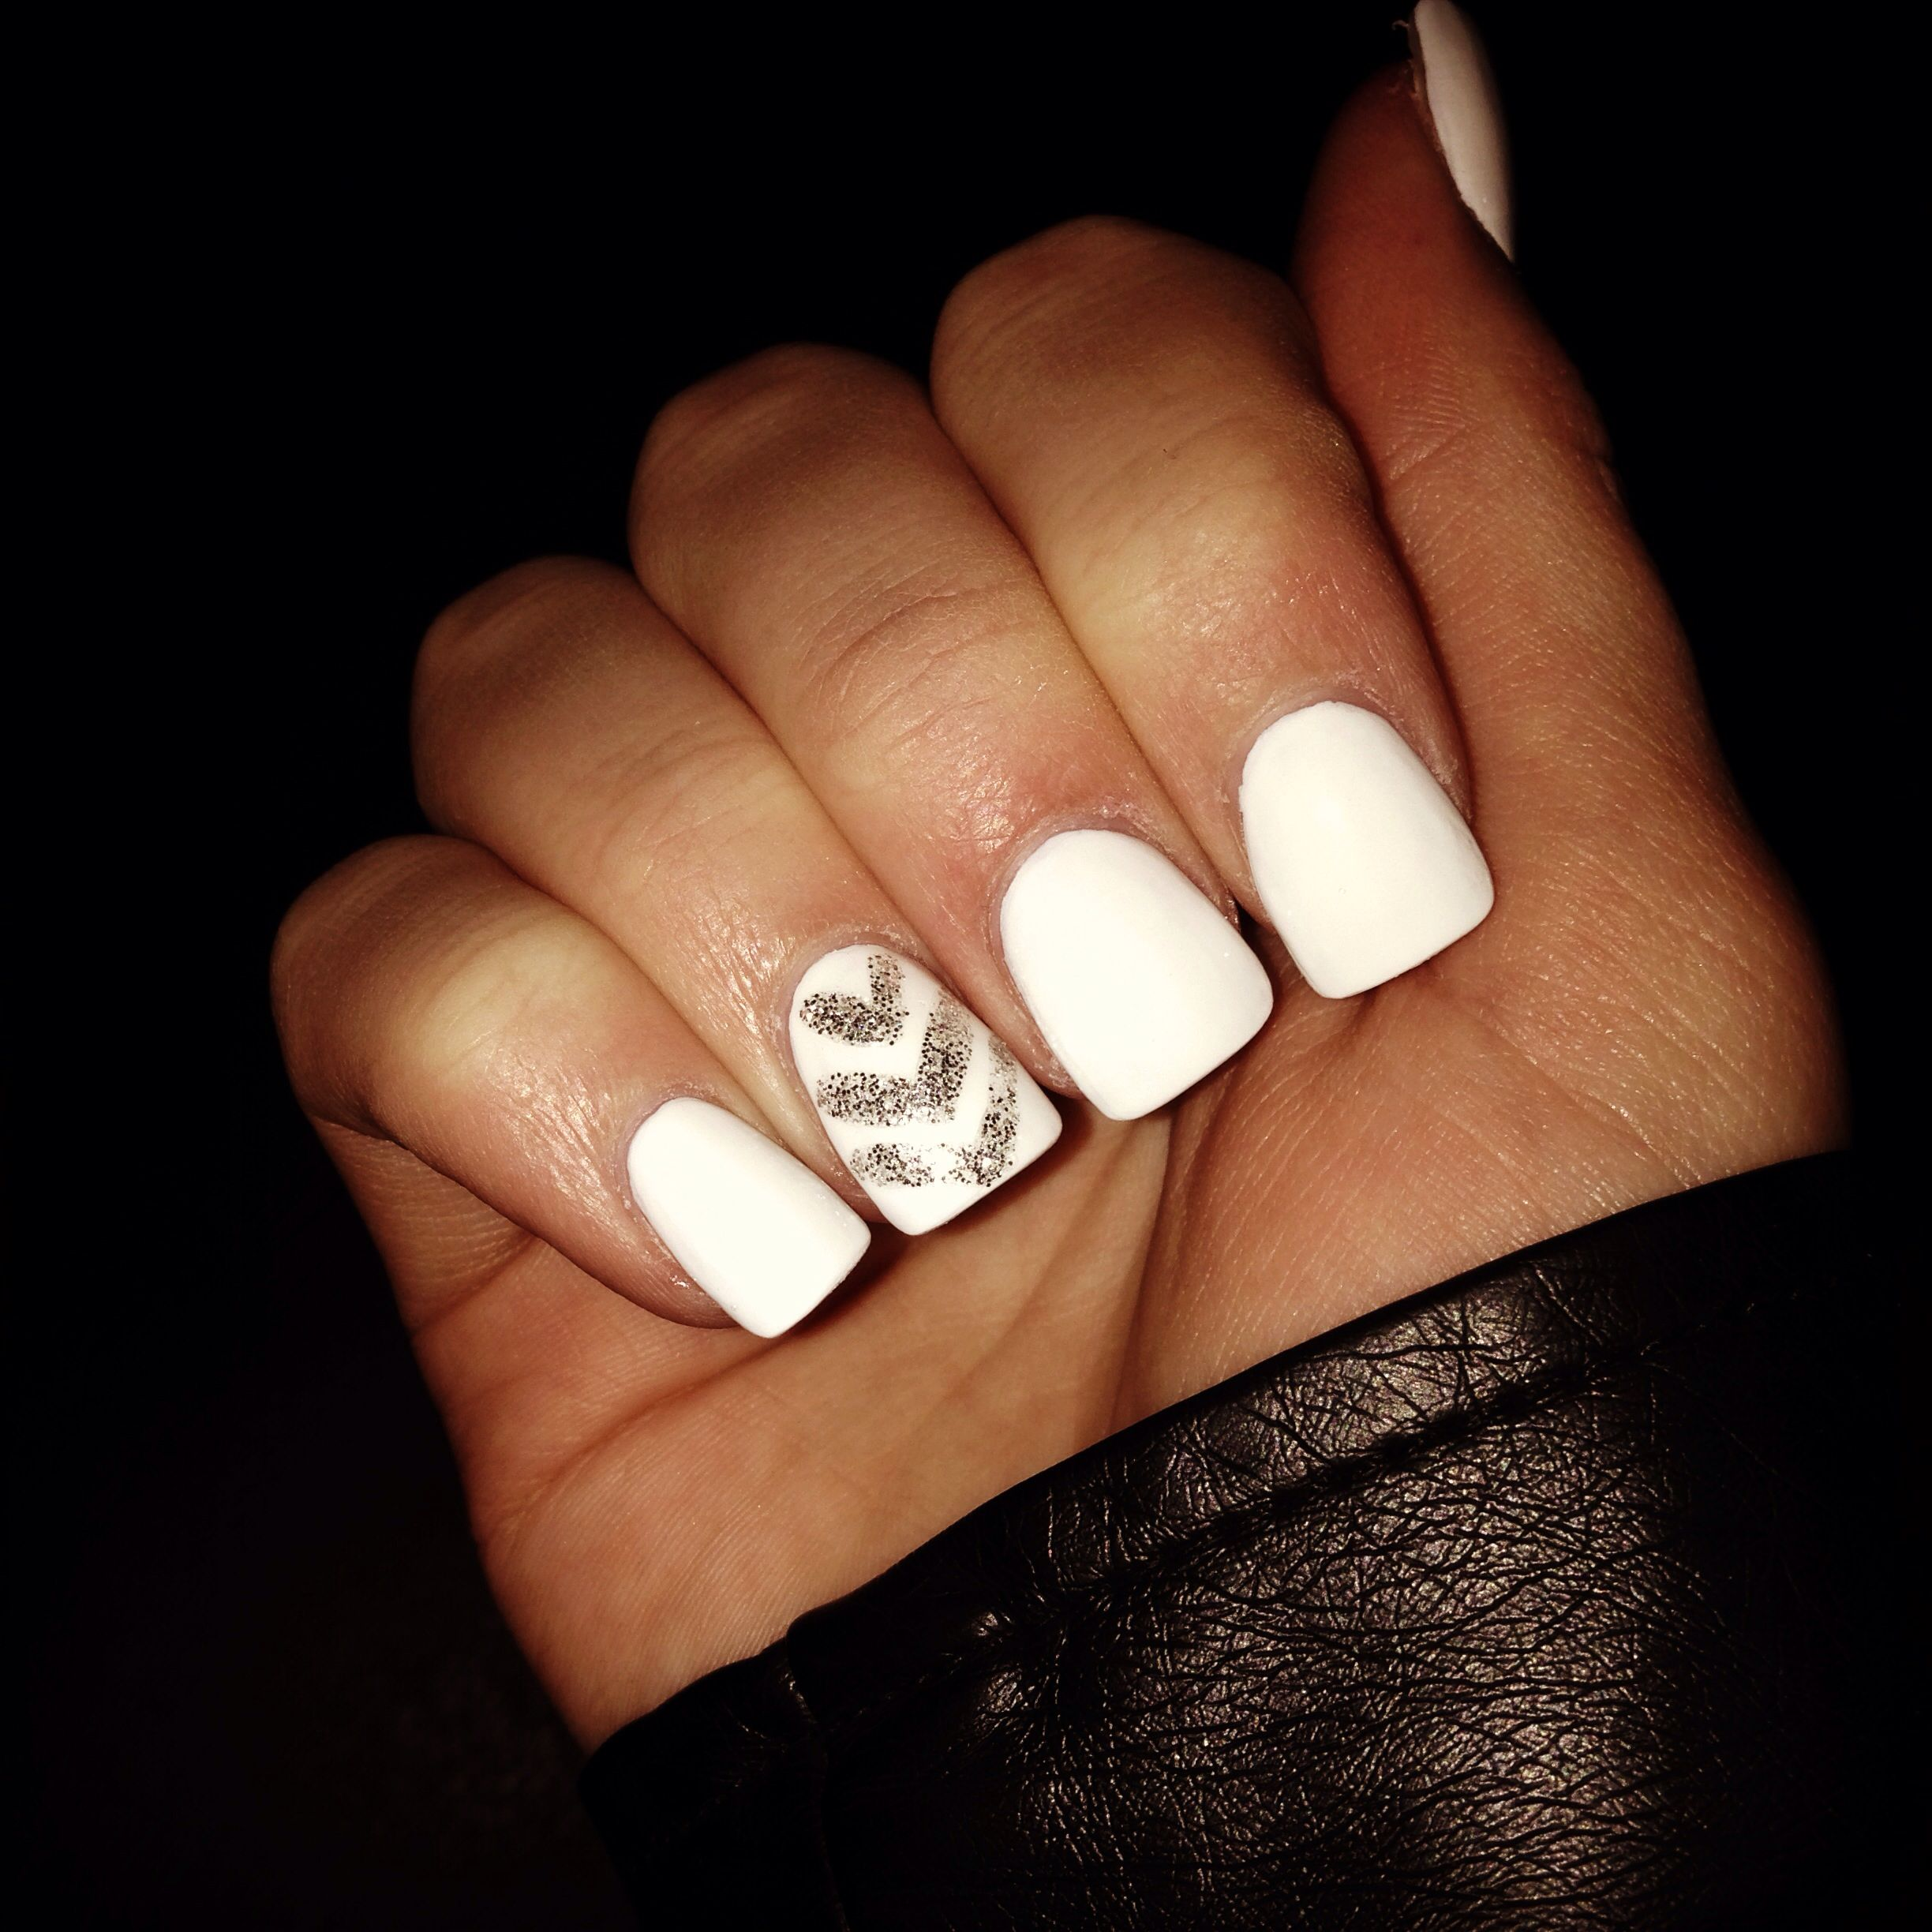 White acrylic nails wi...